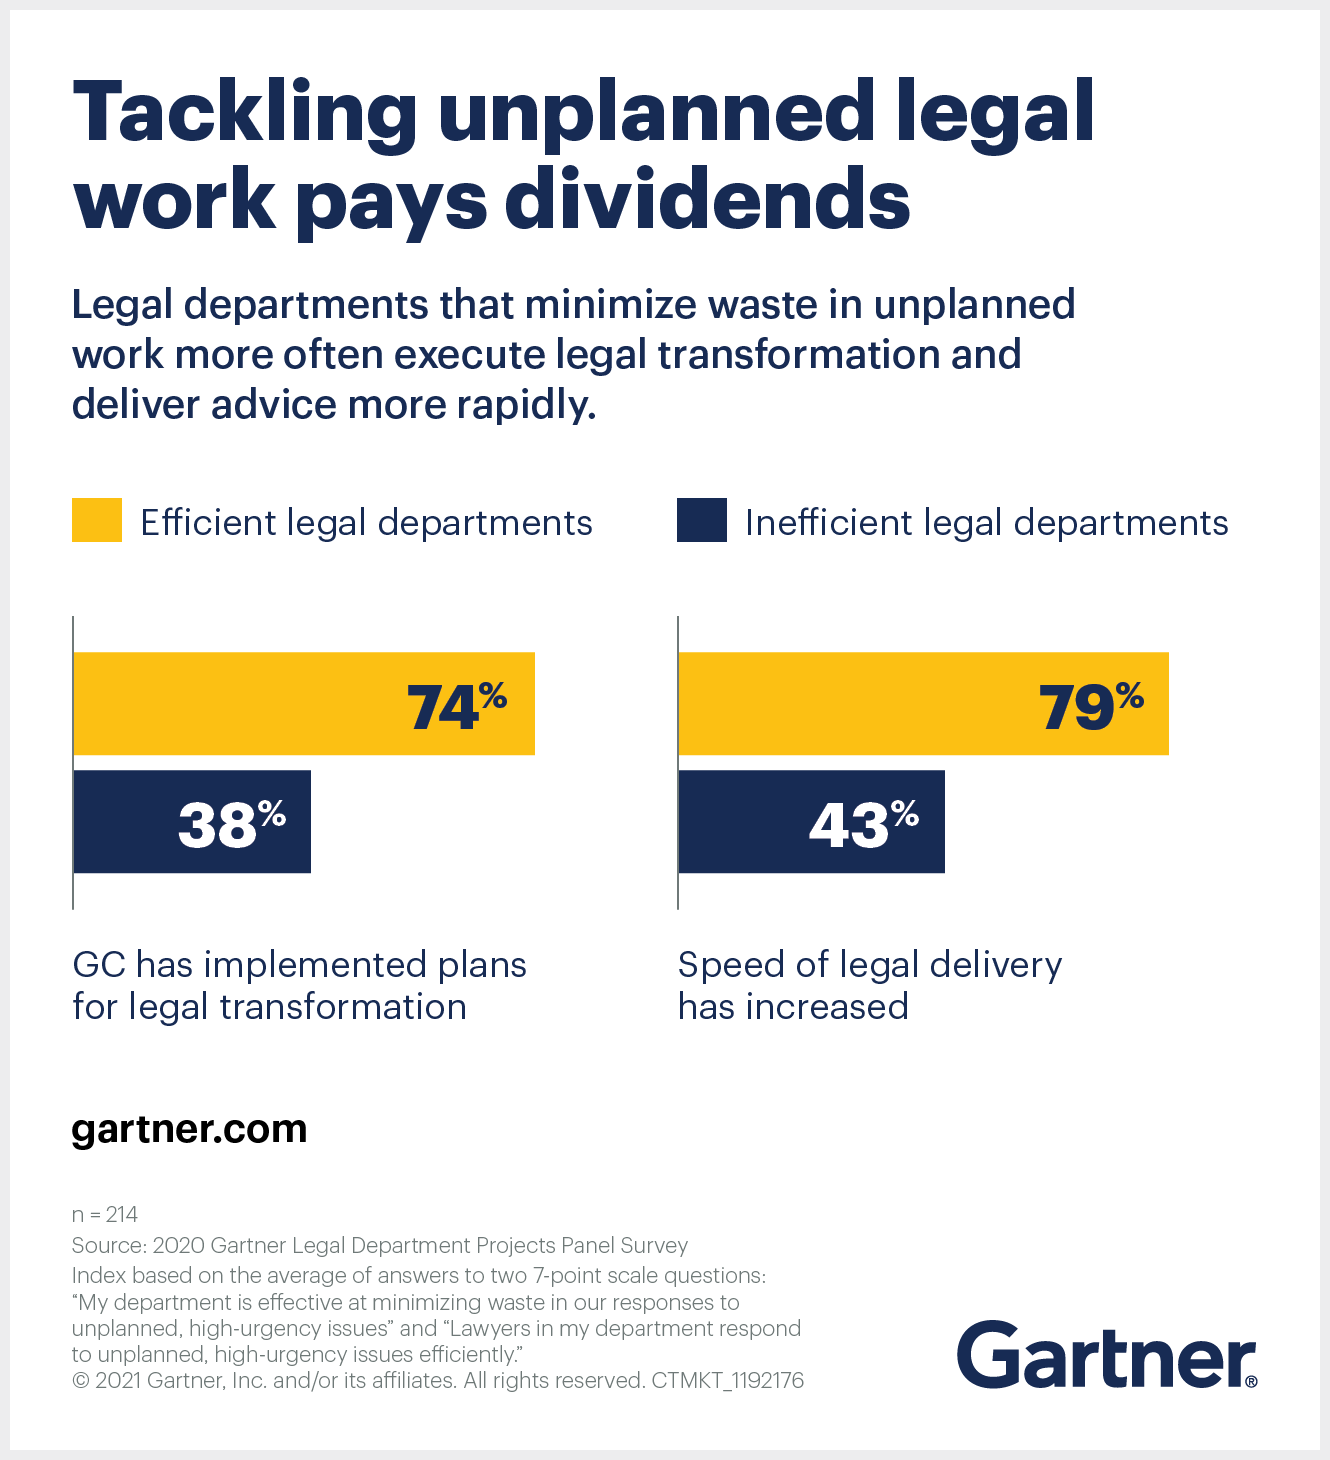 Legal departments that don't get distracted by unplanned work are more likely to deliver timely, relevant advice to the business.